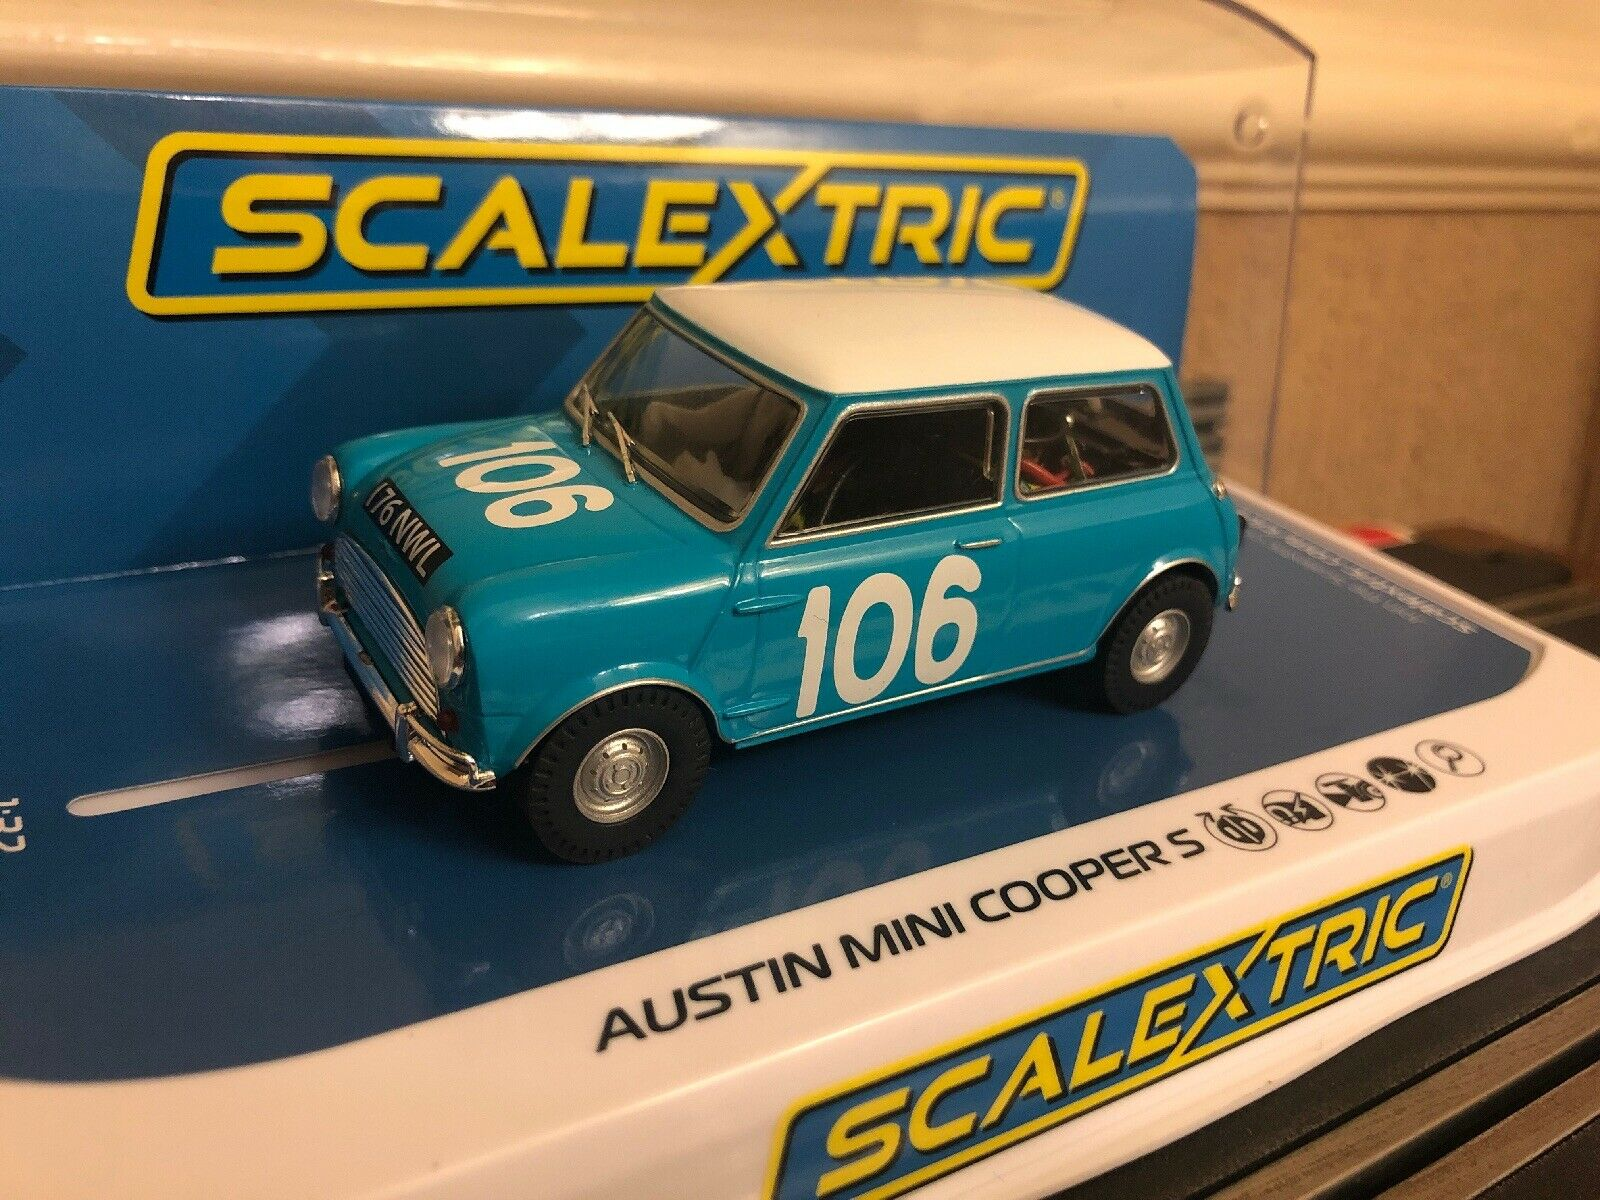 Scalextric Digital Mini Cooper S No106 Targa Florio C3913 Brand New Boxed